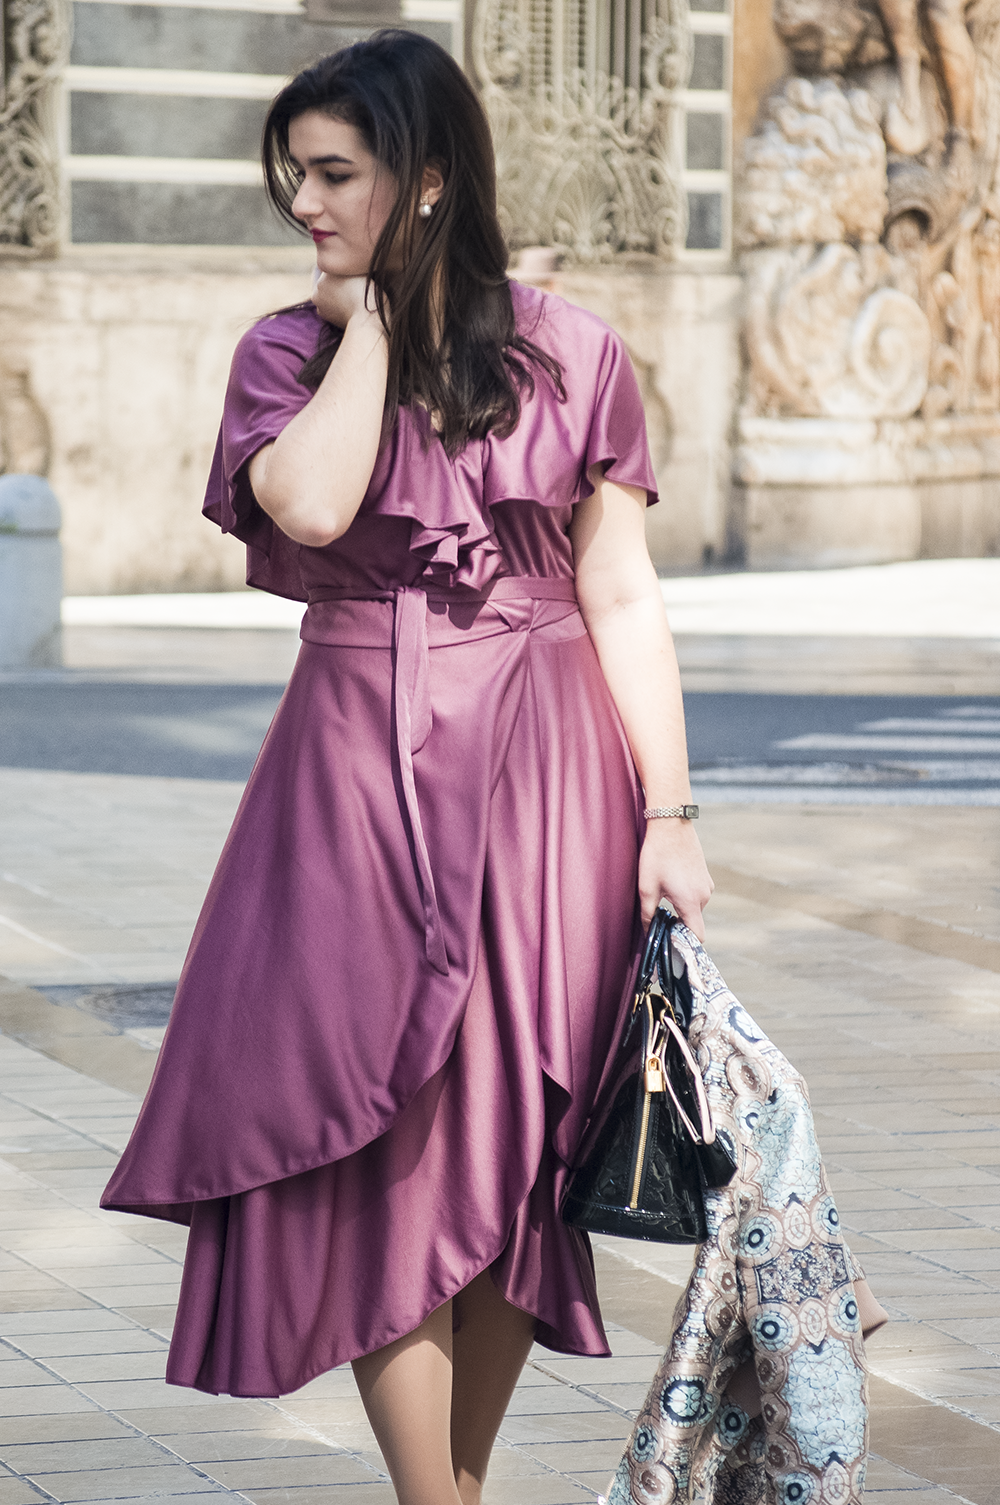 valencia fashion blogger spain somethingfashion vlc moda vintage vestido morado bimba y lola sunnies colorful estilo streetstyle amanda ramon_0091